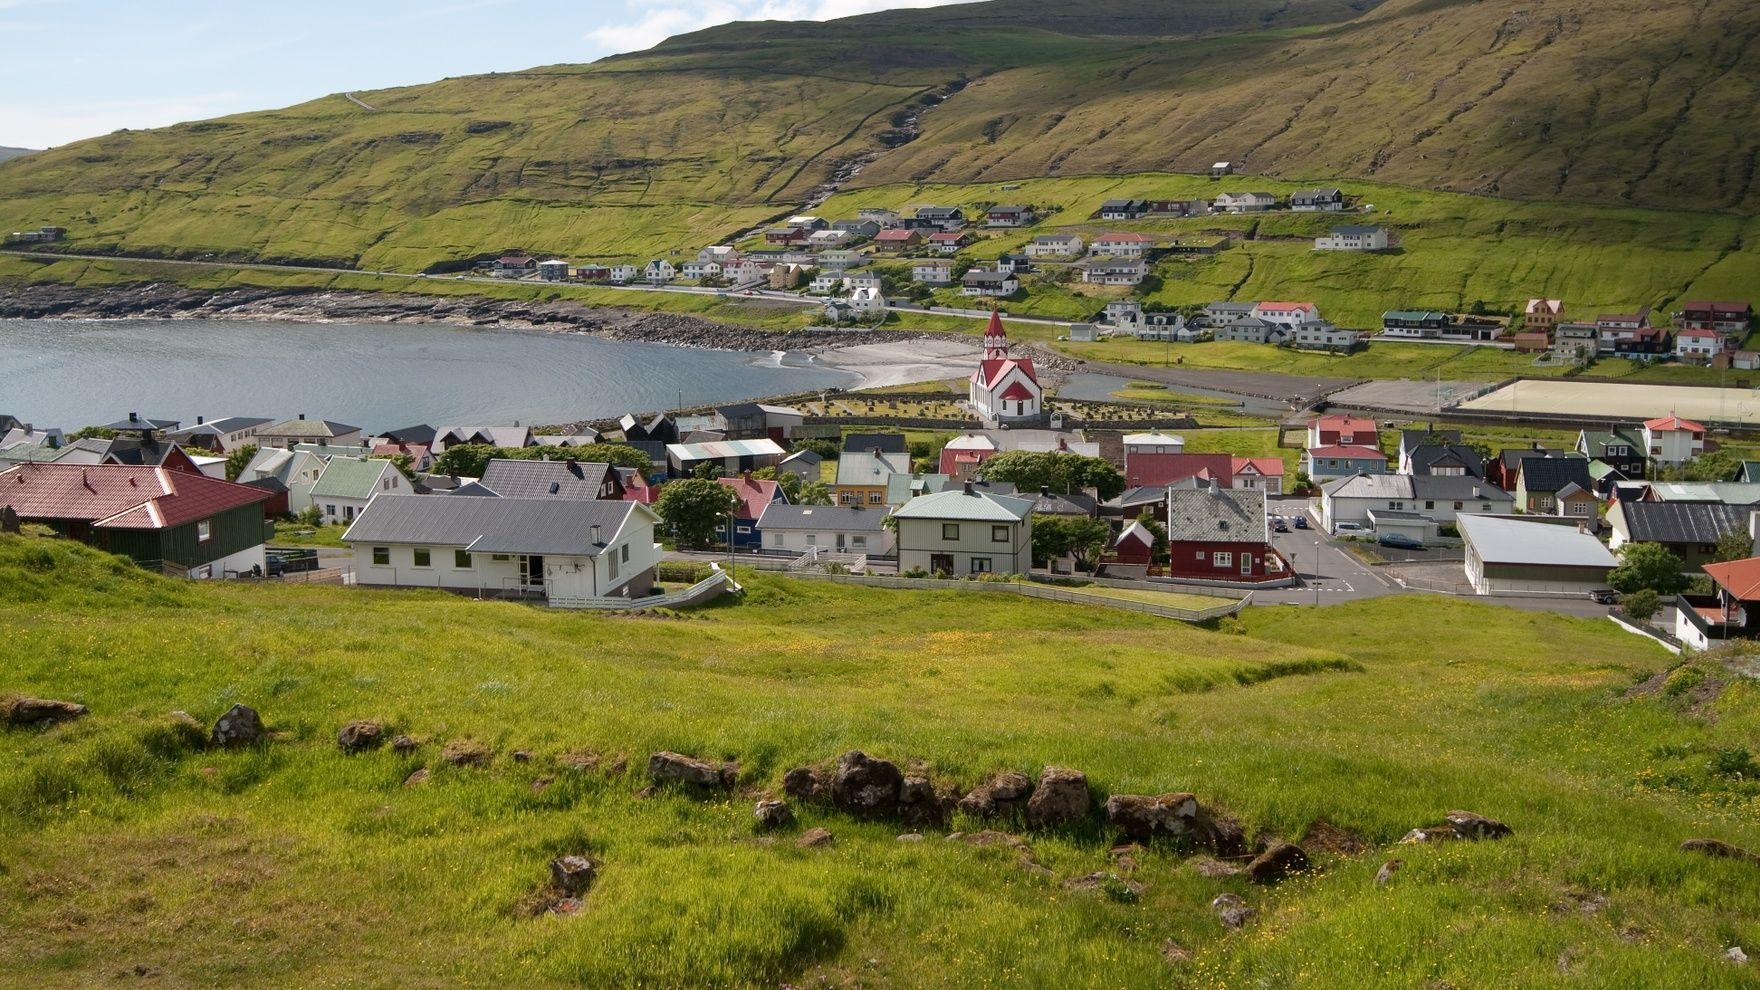 Sailing expedition to the Faroe Islands